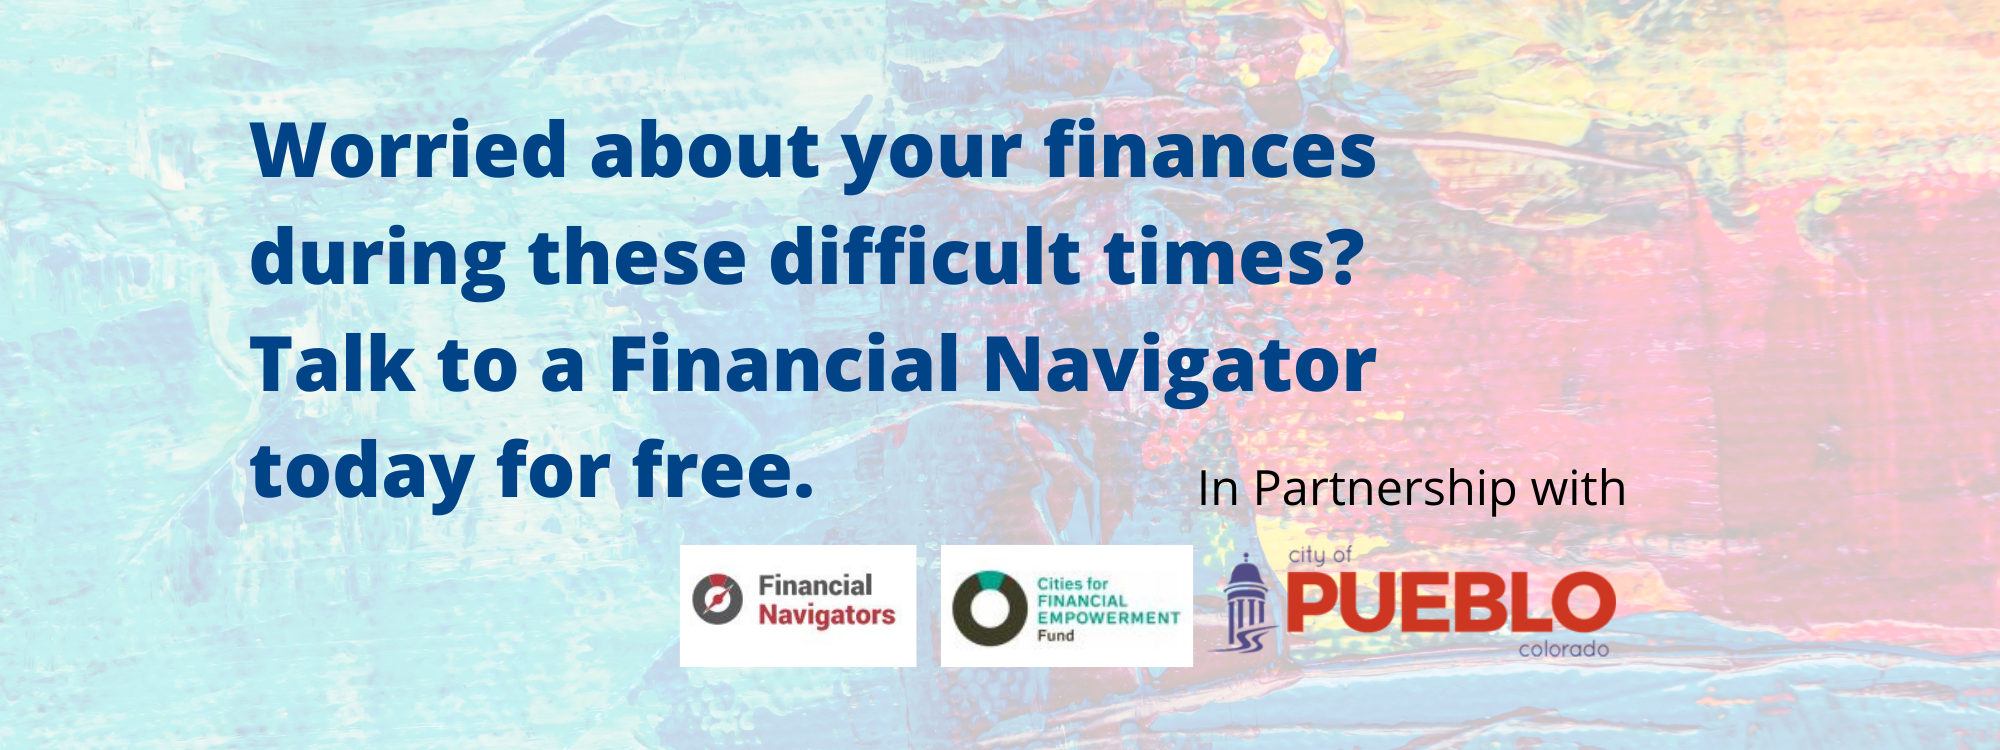 Financial Navigation Services